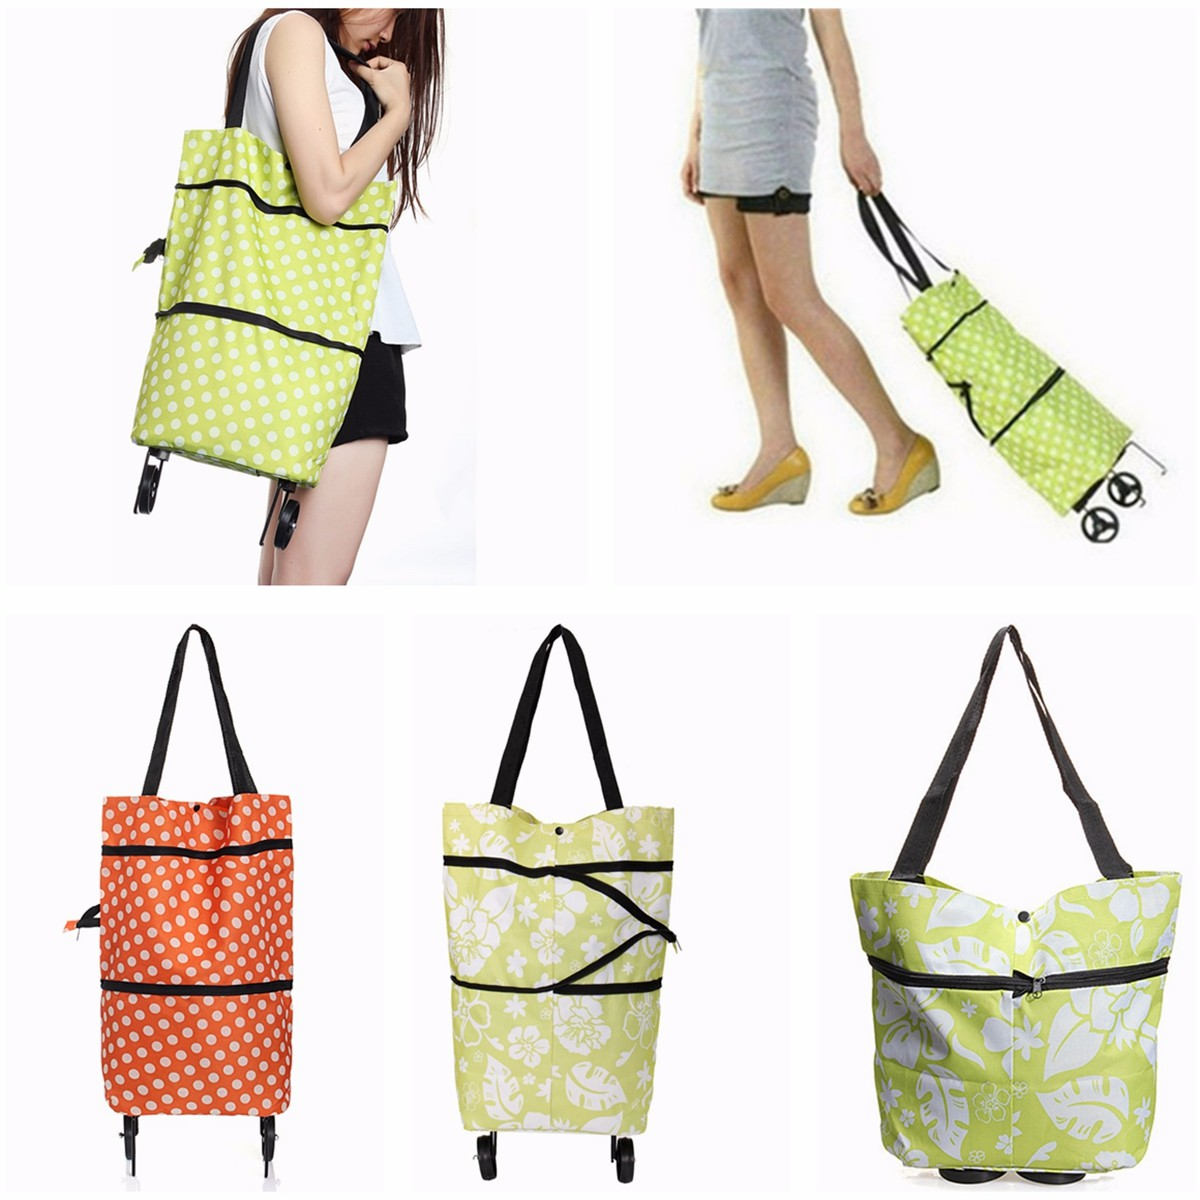 Foldable Shopping Trolley Cart Rolling Wheels Grocery Shoulder Tote Bag Handbags,Green Flower color